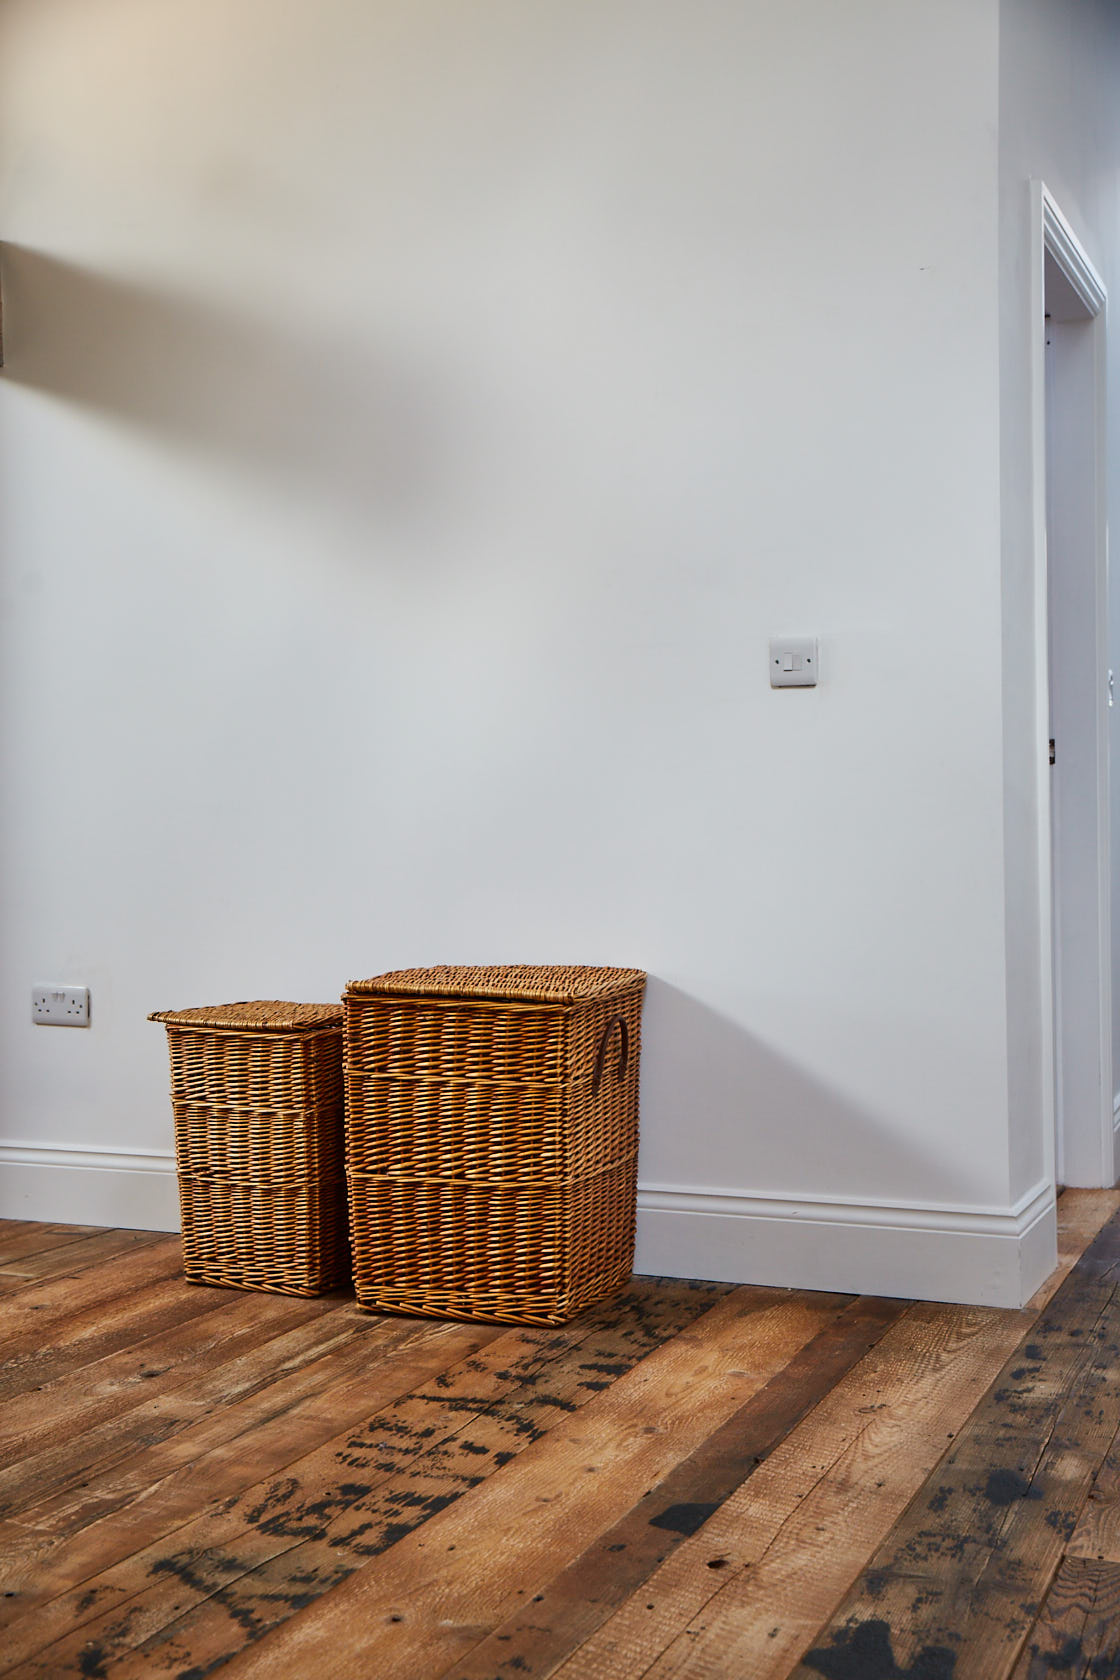 Baskets sit on reclaimed barn brown wood flooring